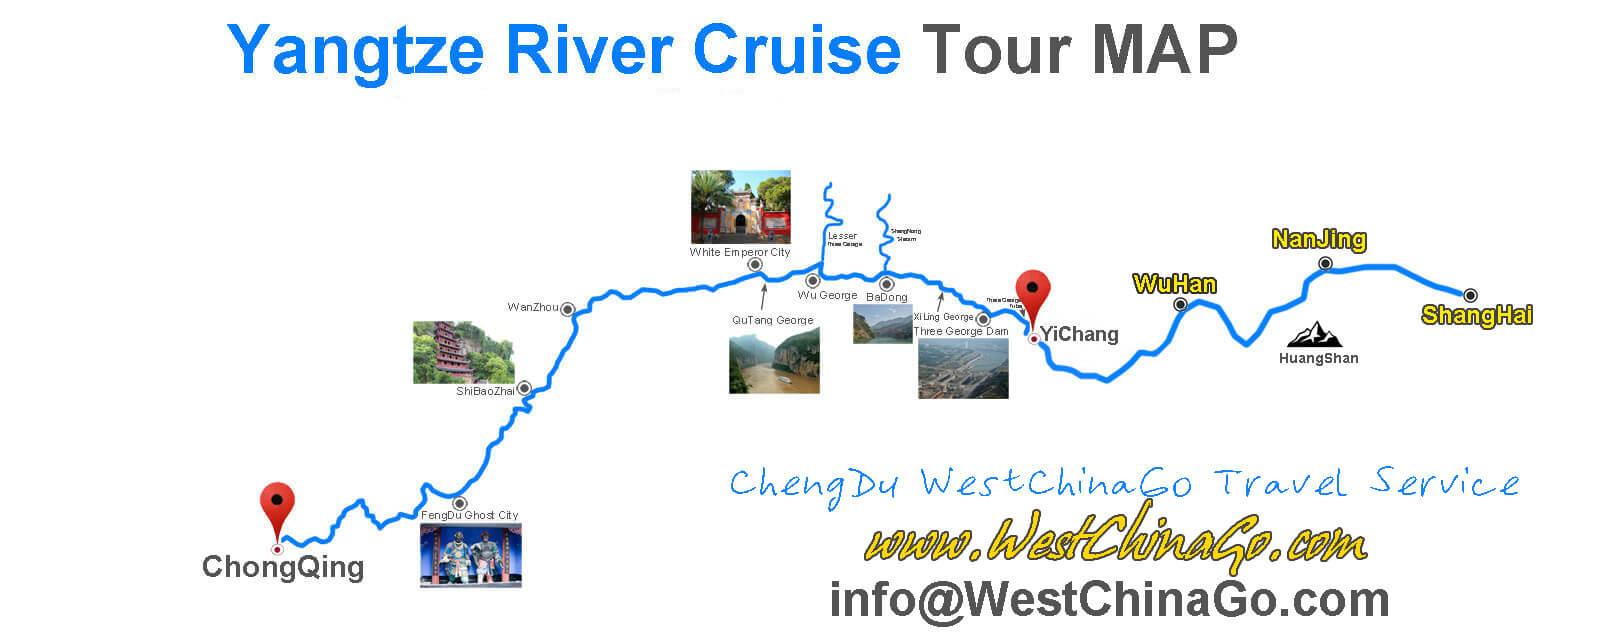 yangtze river cruise tourist map